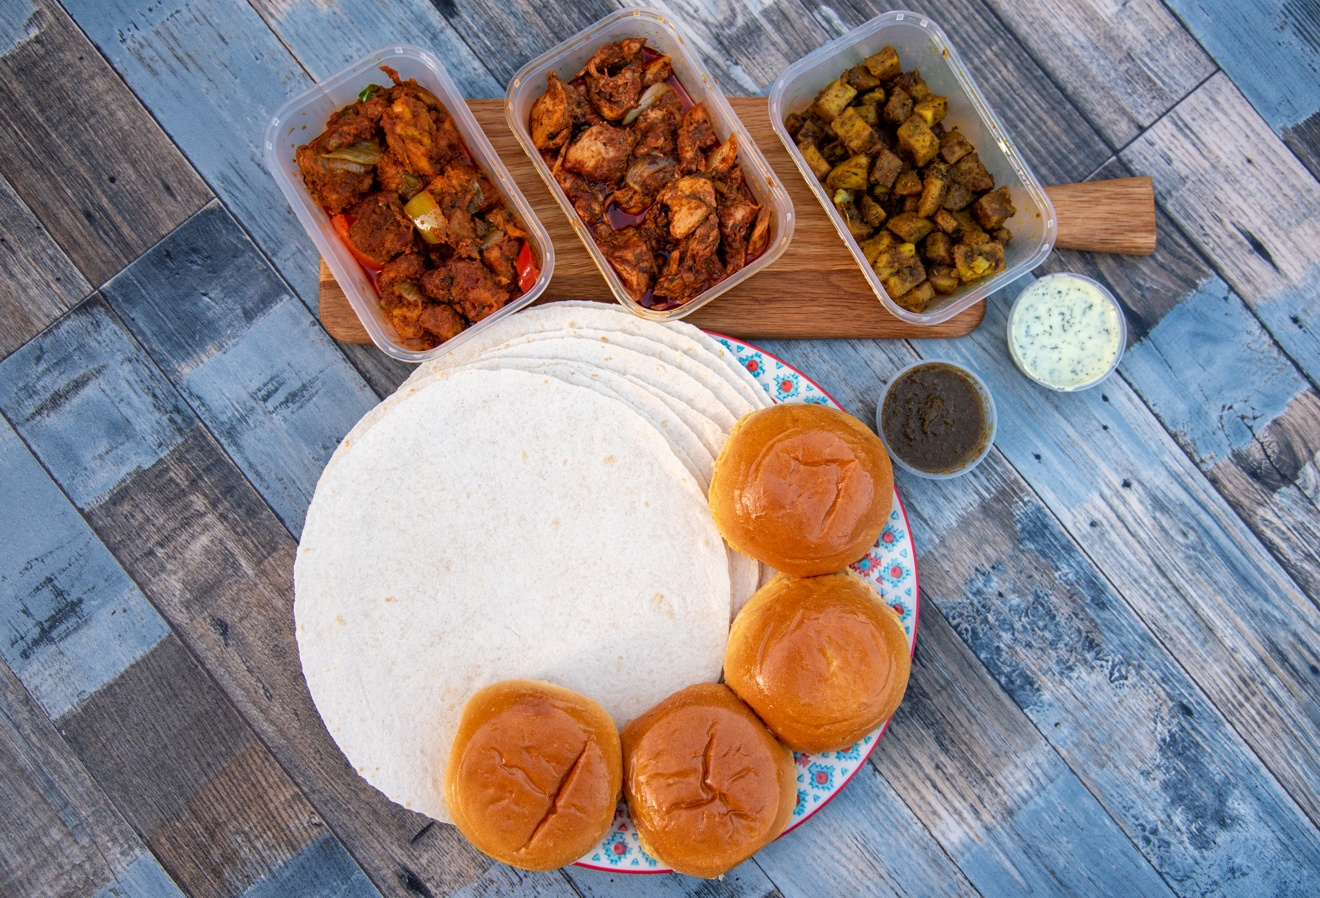 indian food delivery, Mealfor2 wraps brioche